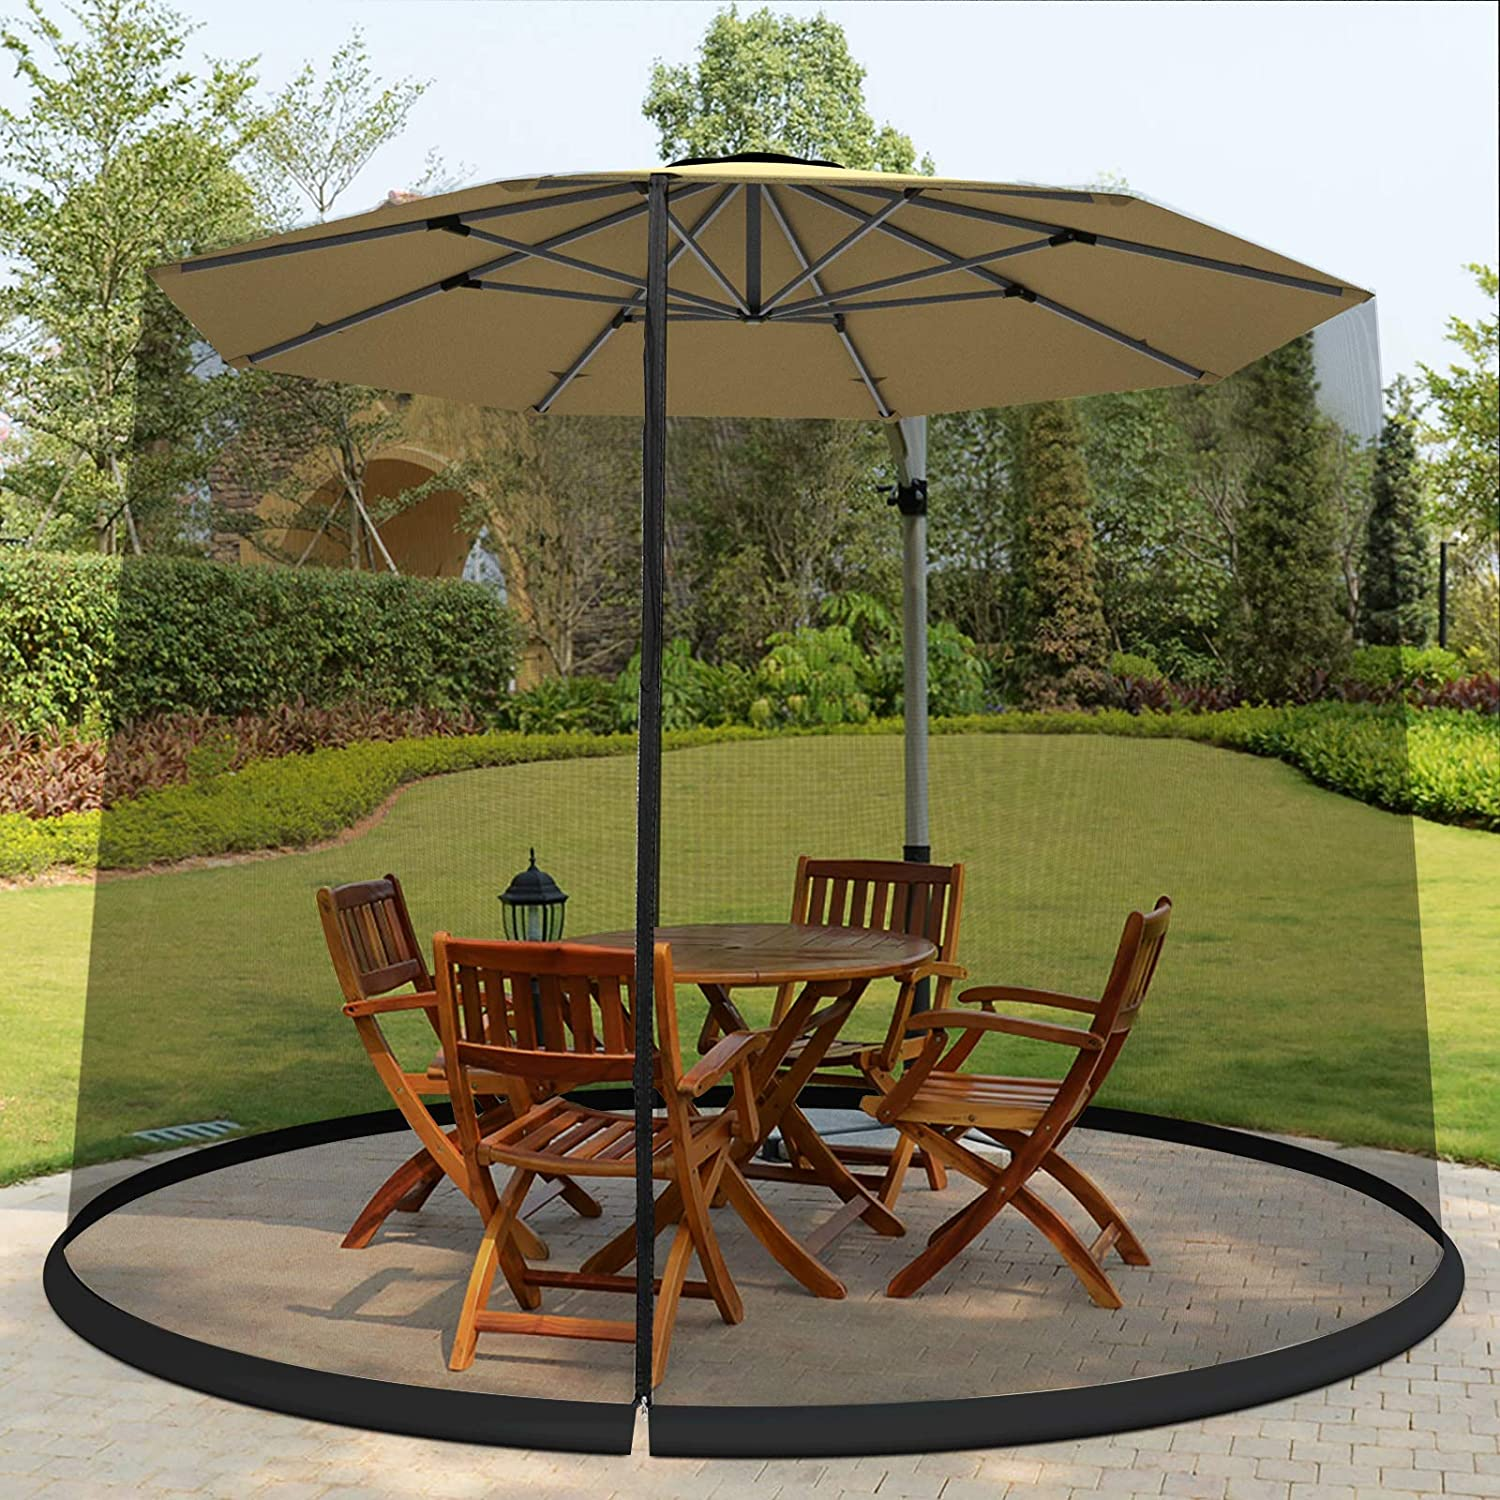 Tangkula 9/10FT Patio Umbrella Screen, with Zipper Door and Polyester Mesh Netting, Height and Diameter Adjustable, Suitable for Outdoor Patio Camping Umbrella